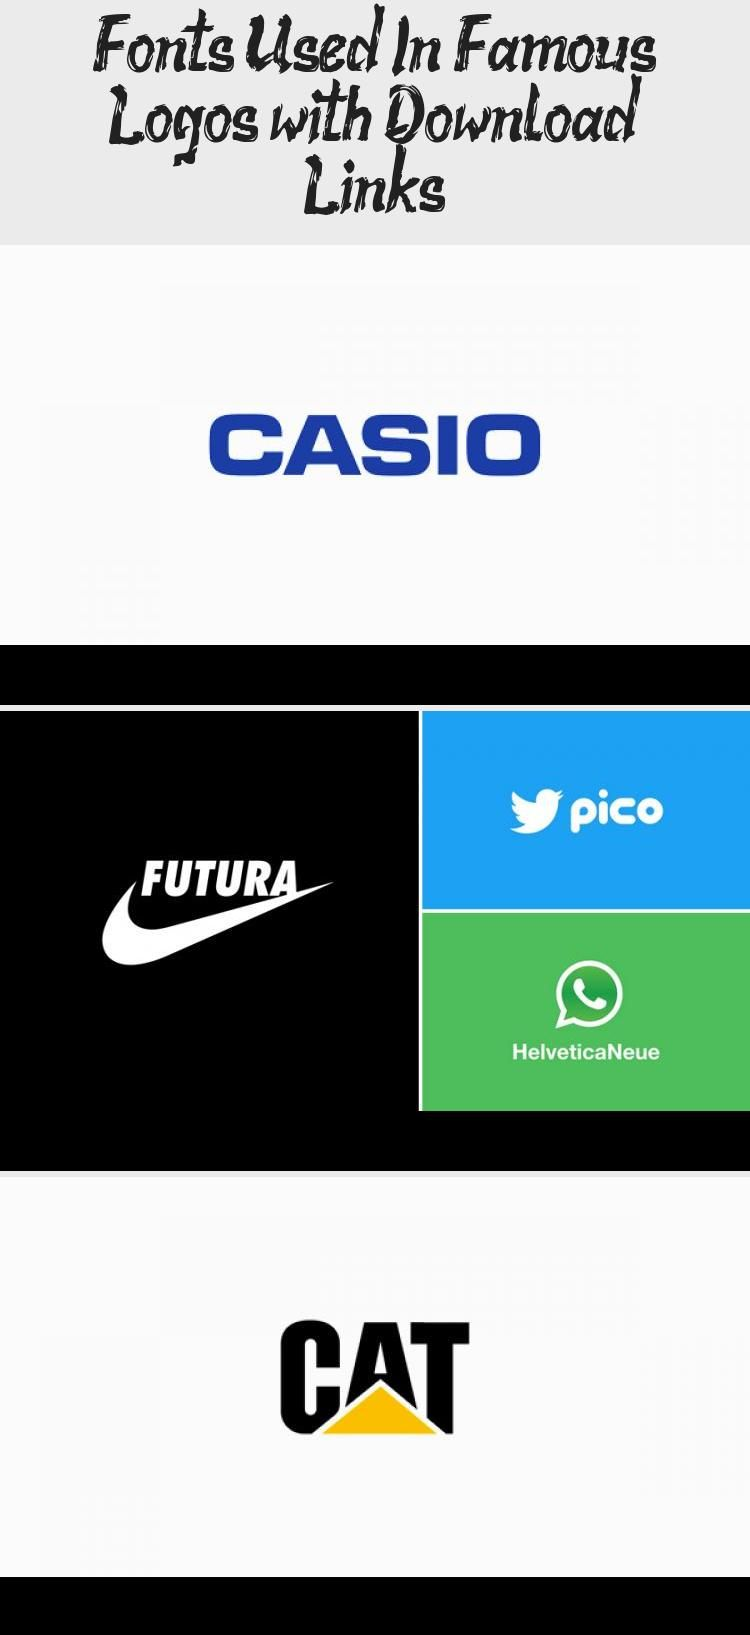 Fonts Used In Famous Logos With Download Links In 2020 With Images Famous Logos Company Logo Logos